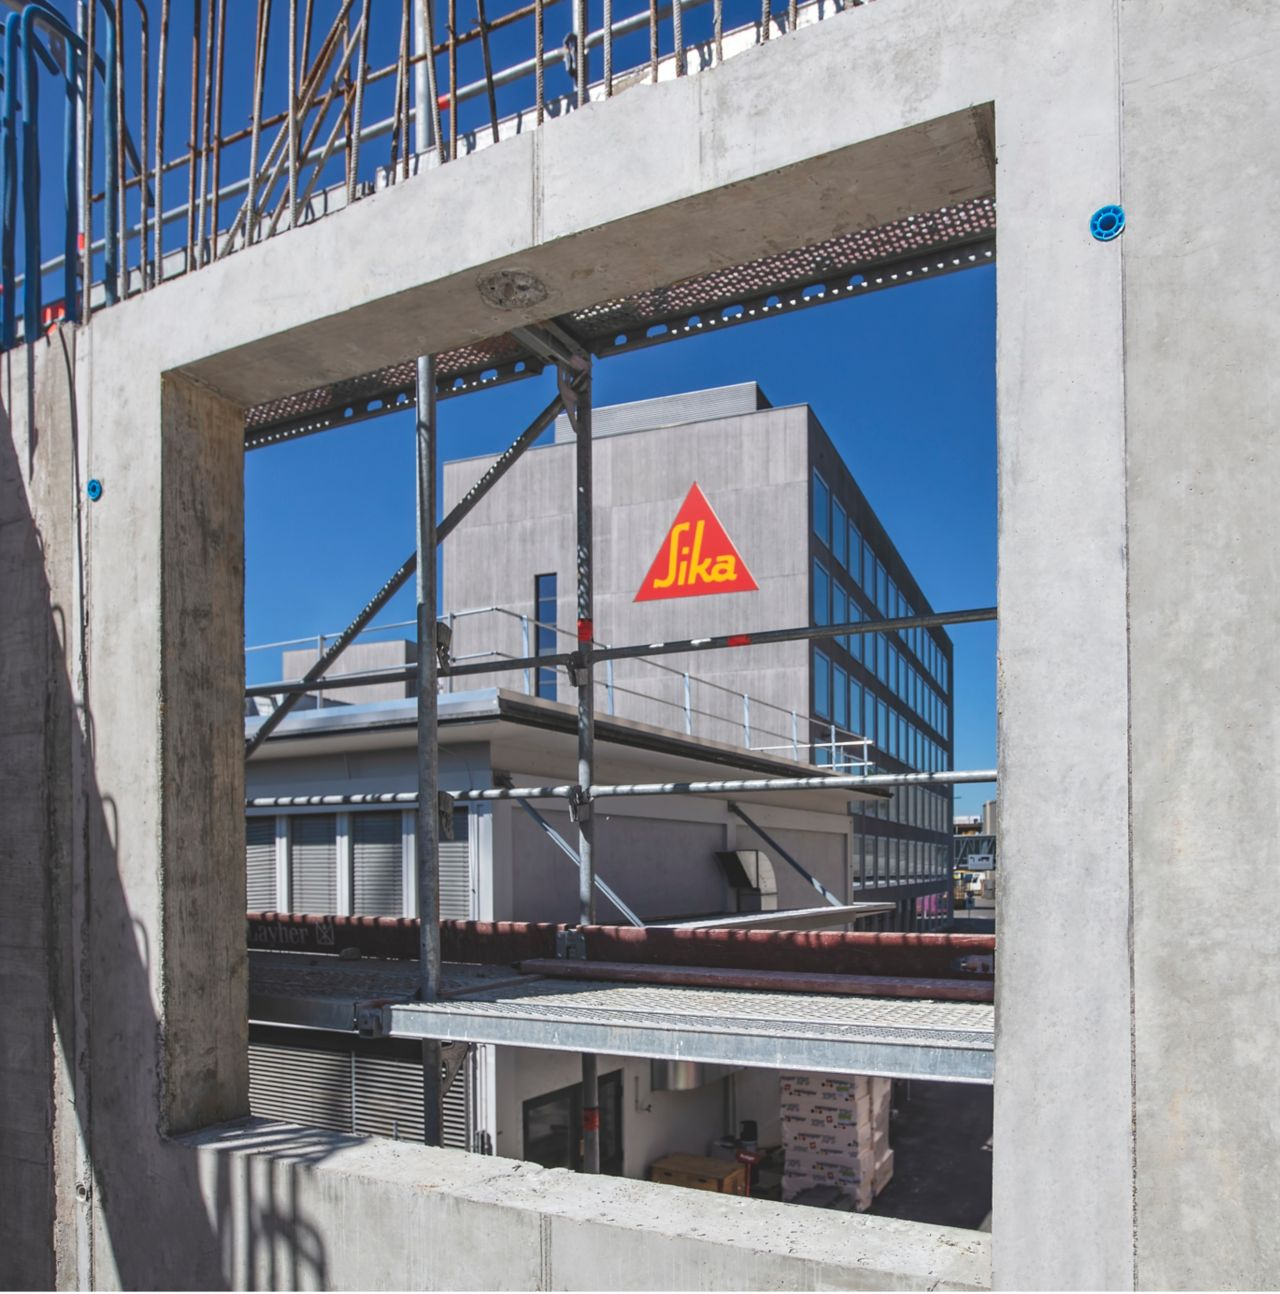 Sika® Separol® formwork release agent on concrete on Sika construction site removed from formwork